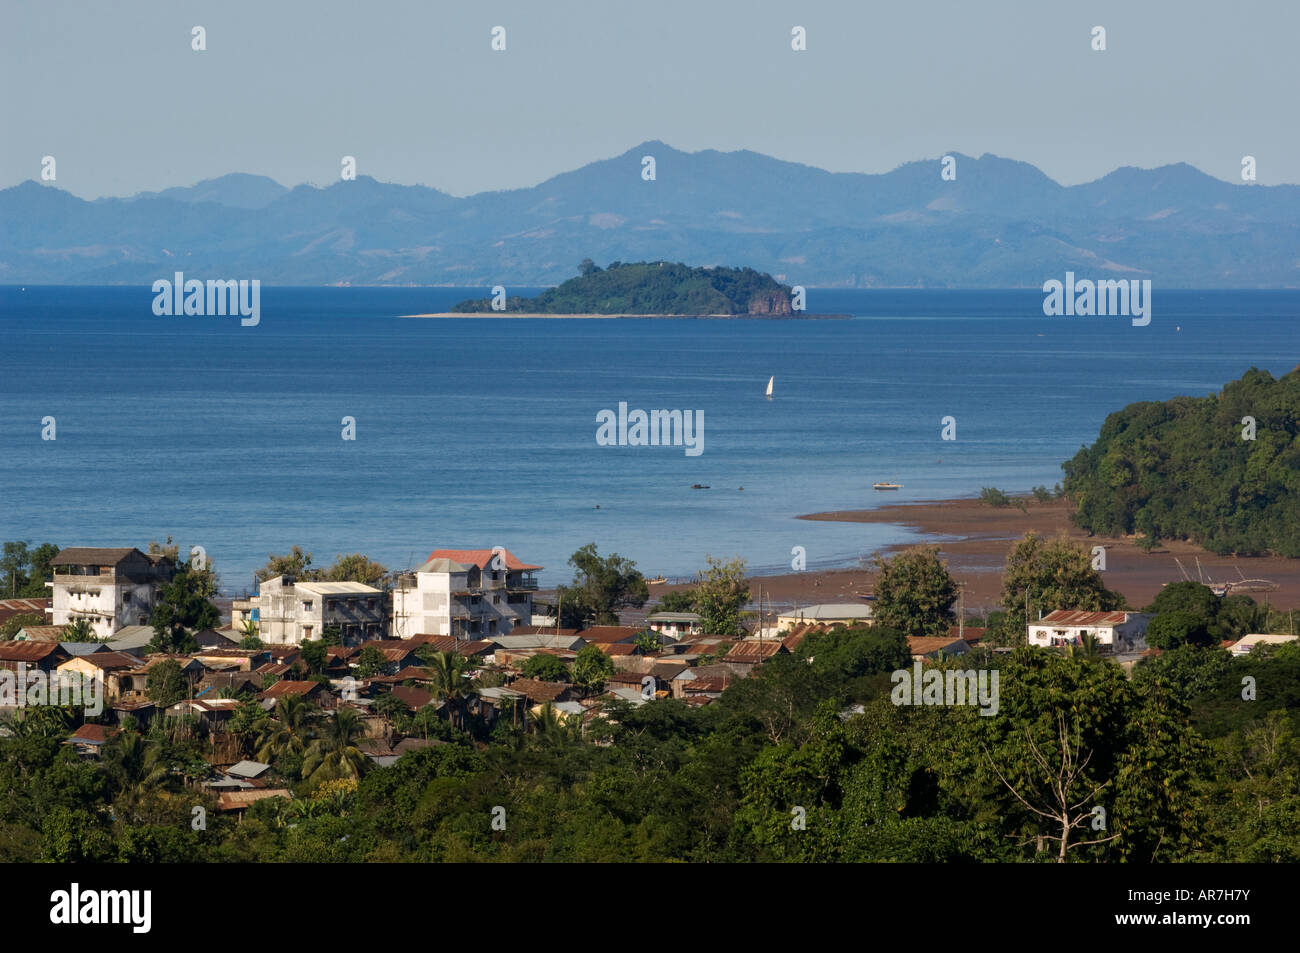 Hell-Ville, Nosy Be, Madagascar - Stock Image